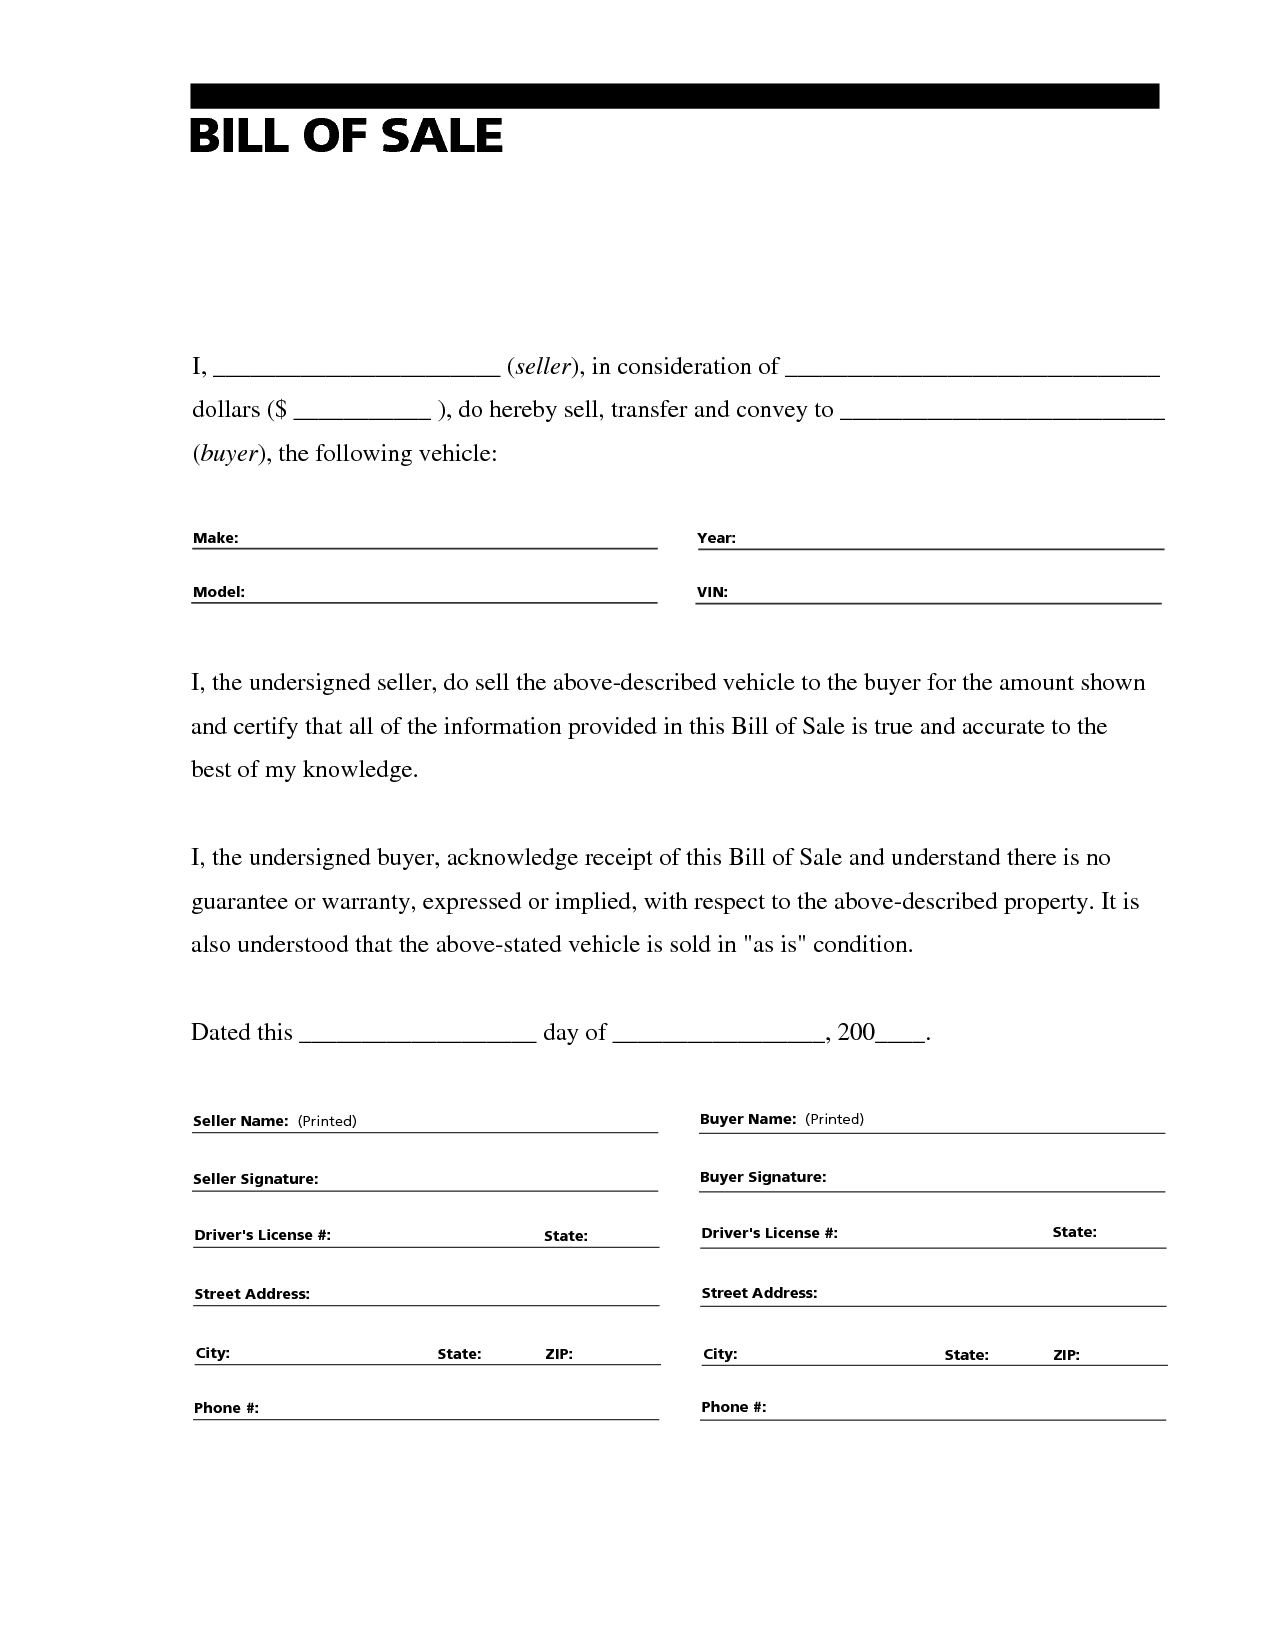 Letter to Seller From Buyer Template - Printable Sample Bill Of Sale for Rv form